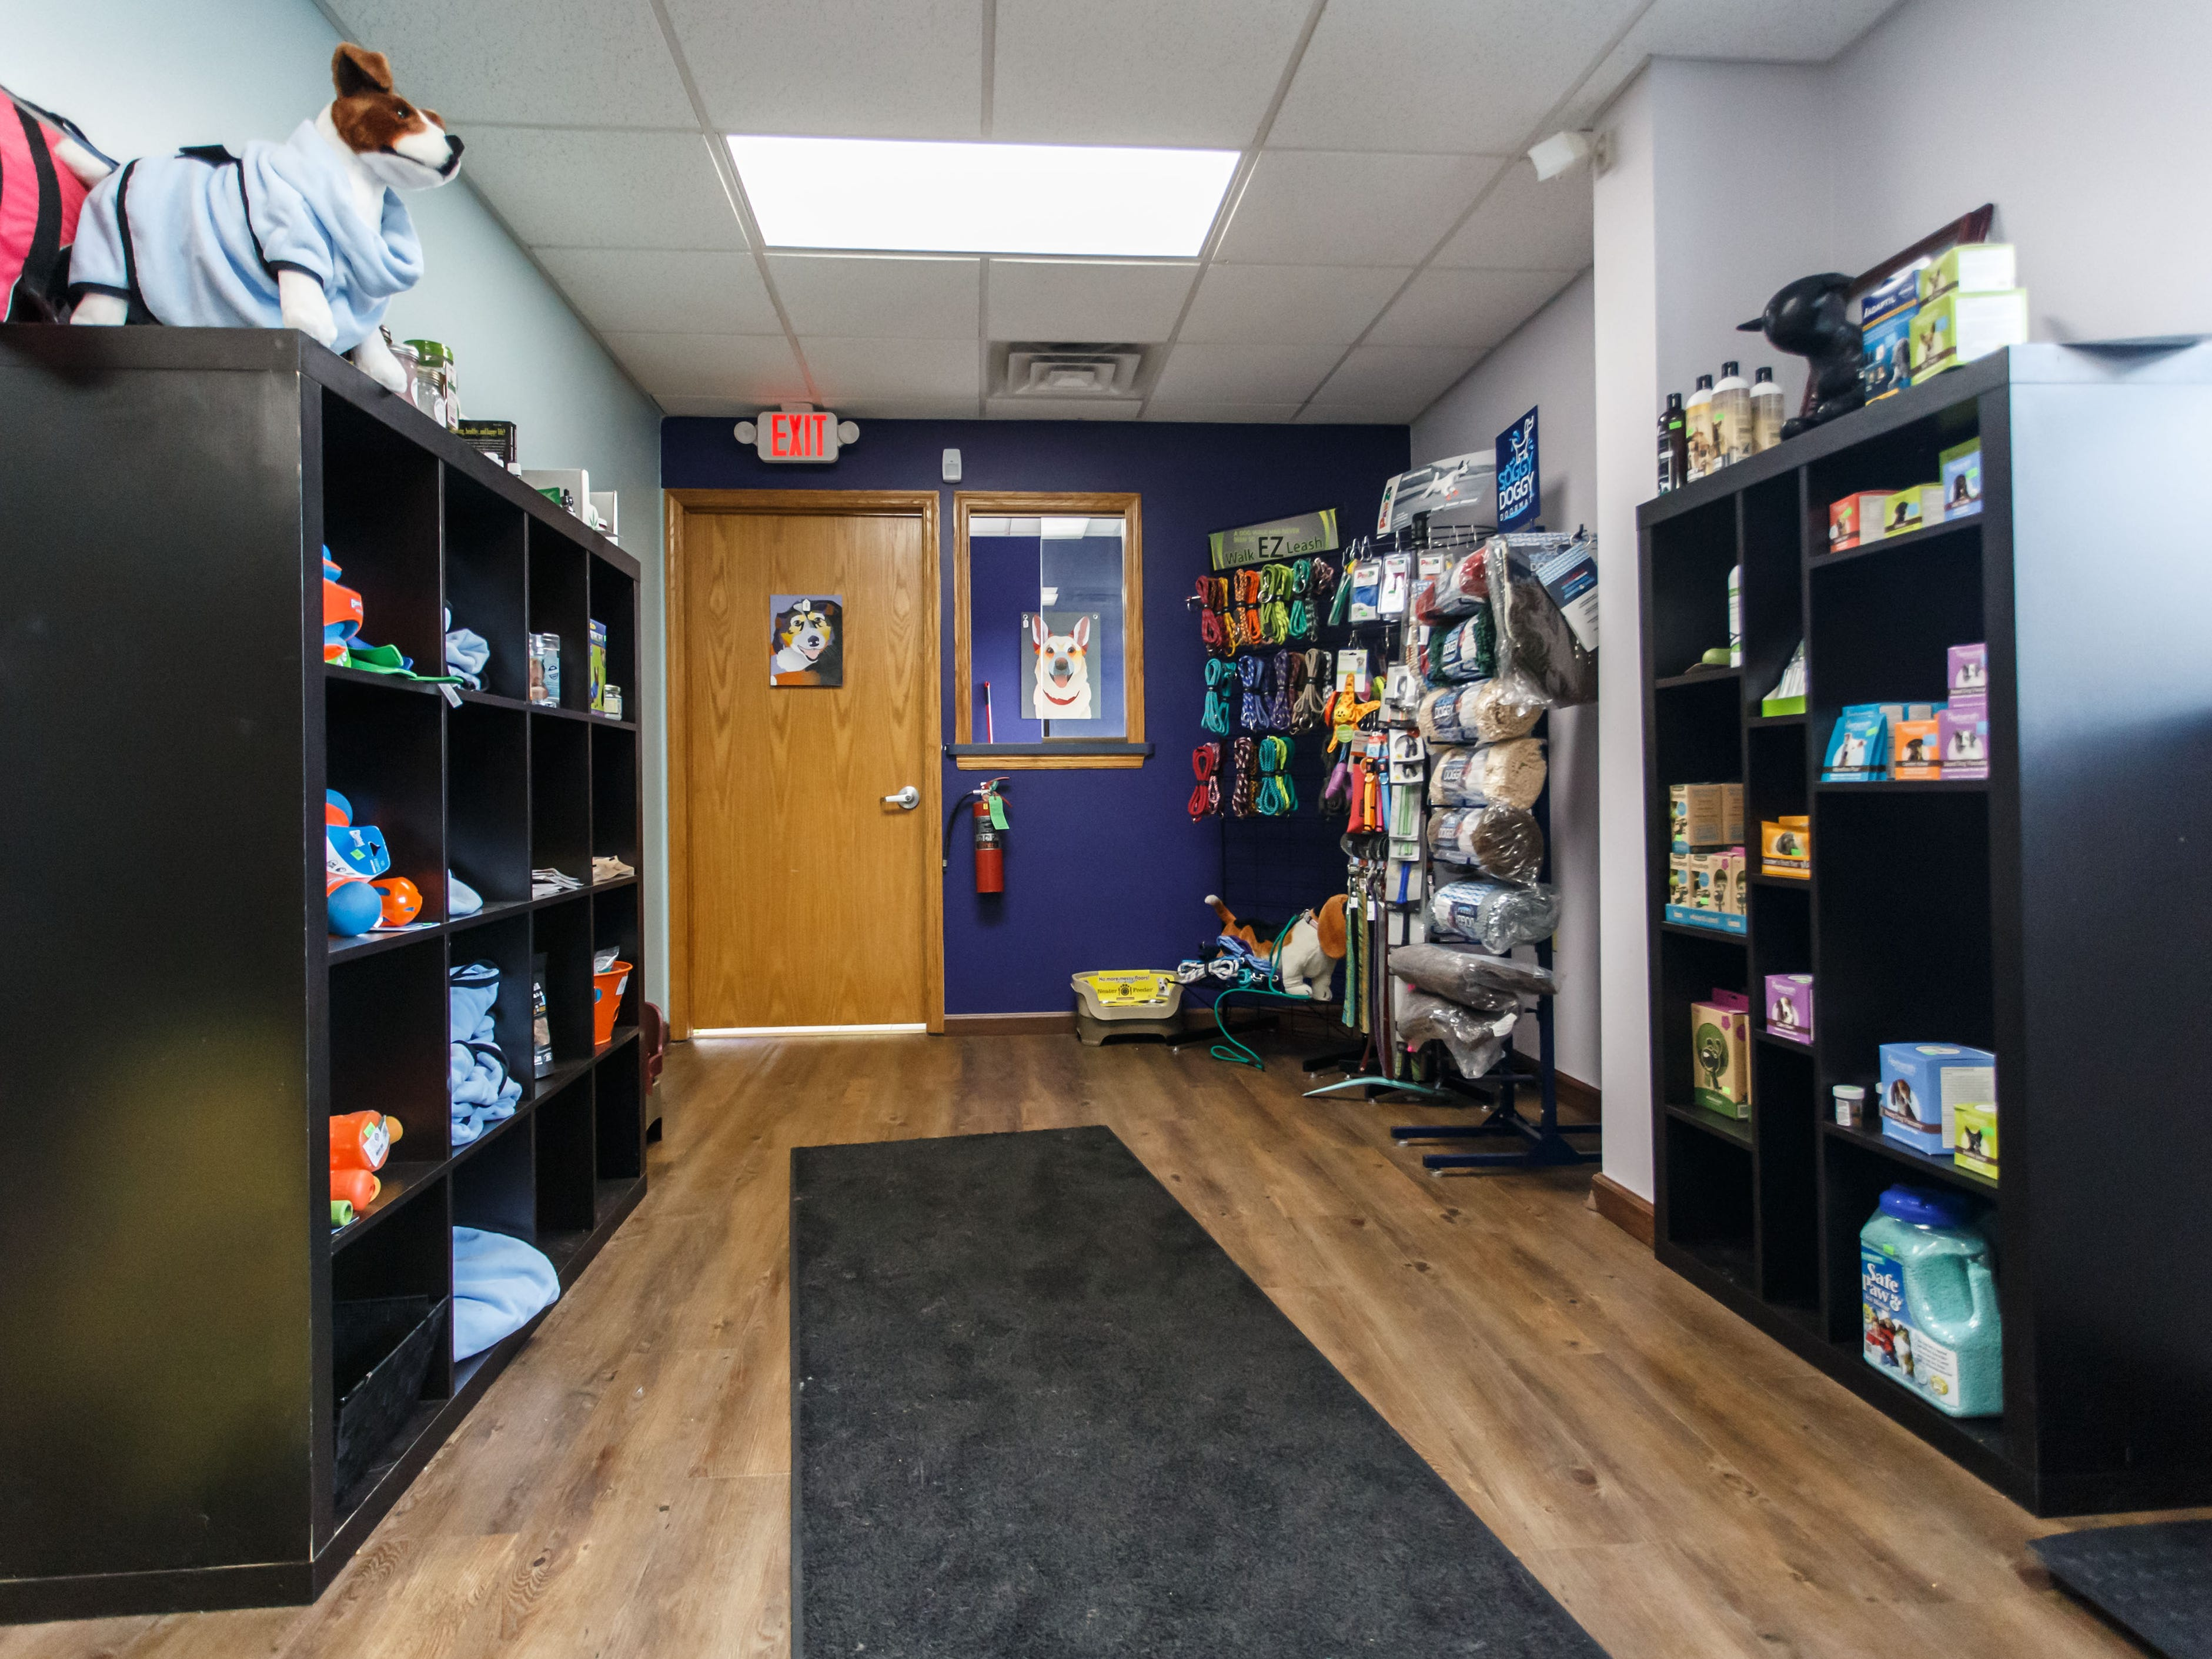 Aqua Therapups in Slinger offers a heated indoor swimming for dogs that can be used for rehabilitation, exercise or just plain fun. They also carry a variety of accessories and doggie safe treats as seen on Monday, Oct. 29, 2018. The business is opening a second location in Brookfield this November.